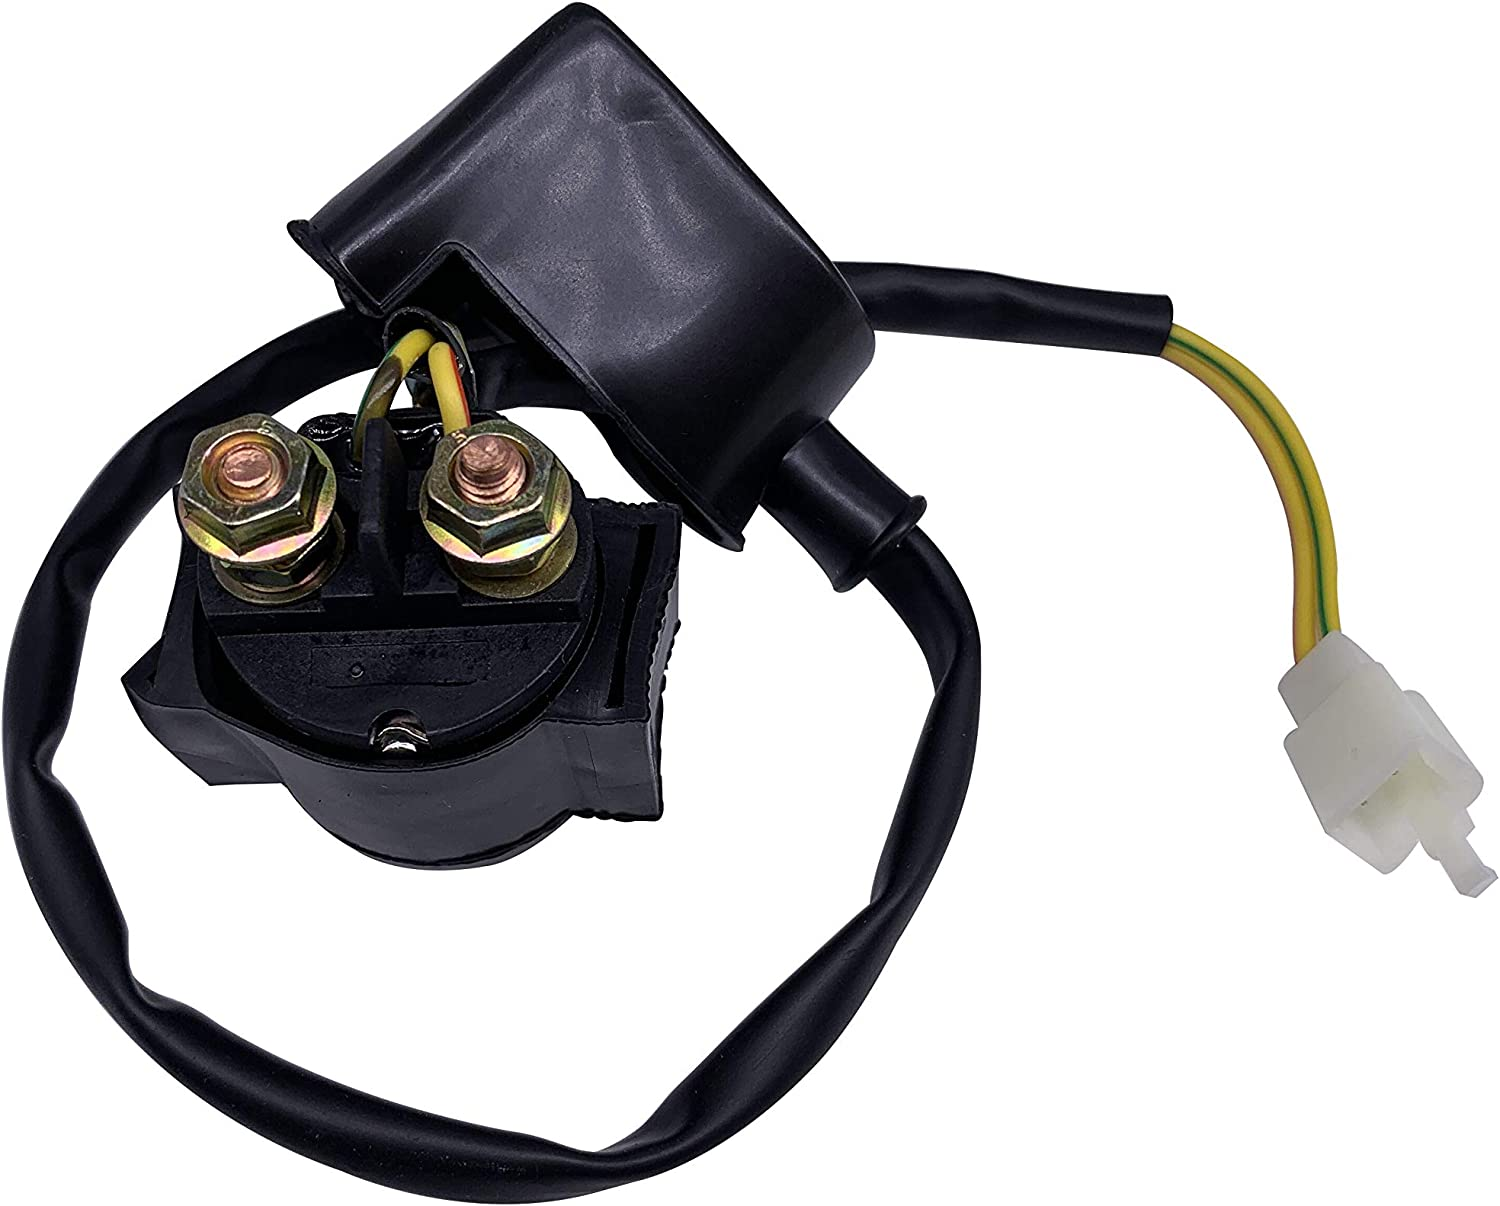 Starter Relay Solenoid For ATV Scooter Go Kart GY6 50cc 70cc 125cc 150cc Chinese